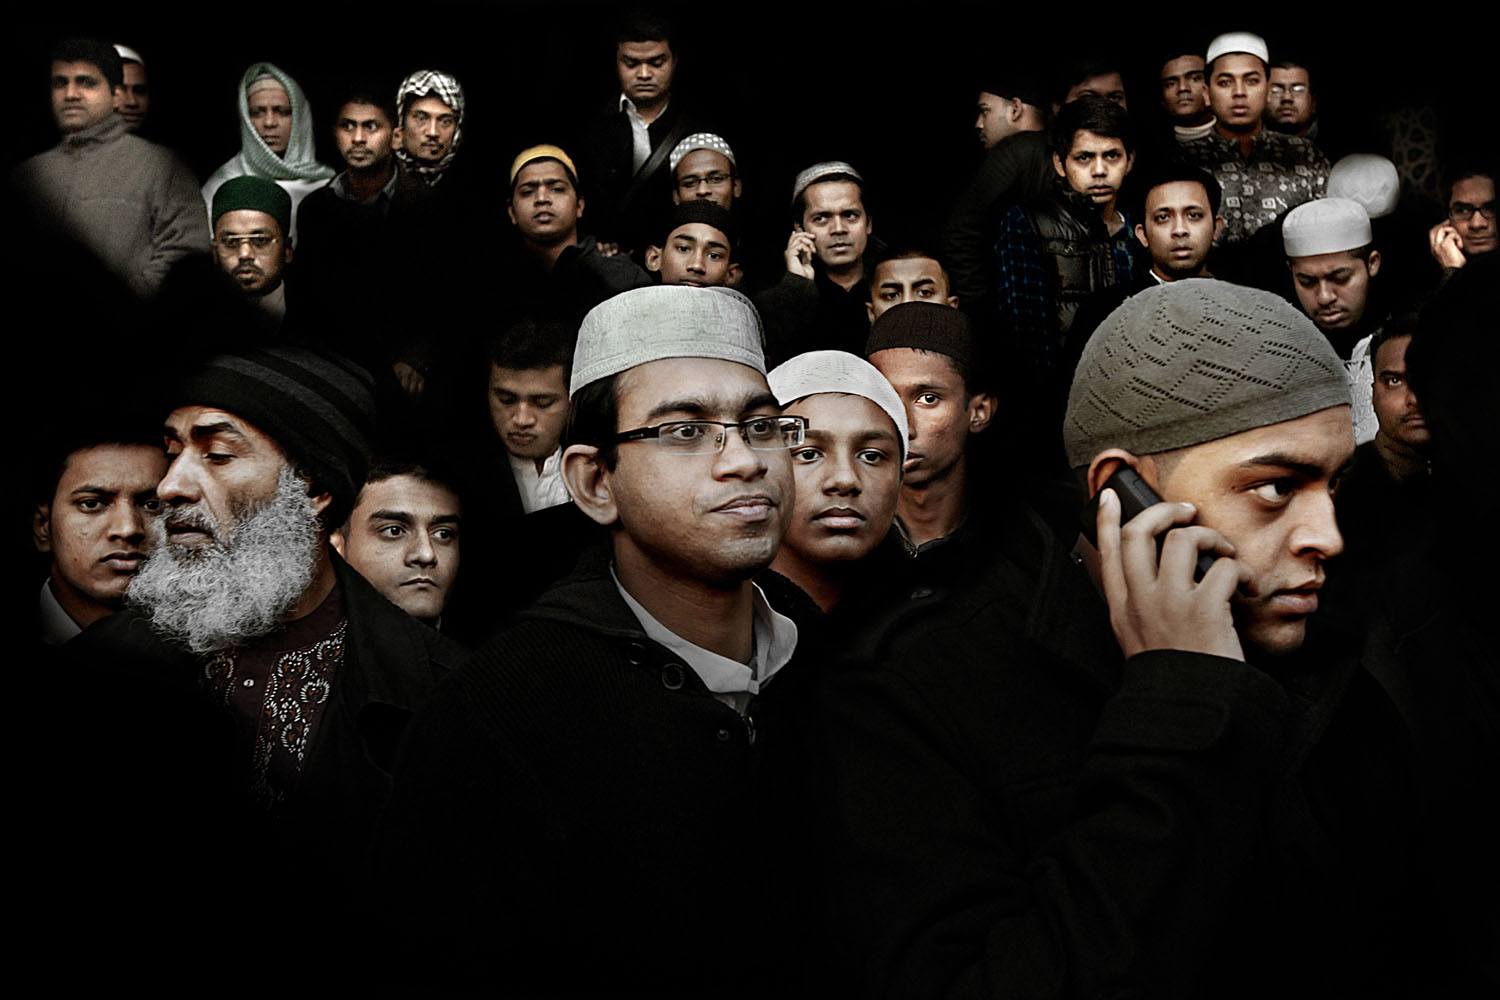 Community members leave the East London Mosque after Eid prayers in London. Combined with the adjoining London Muslim Centre, it is one of the largest mosques in the United Kingdom. Nov. 16, 2010.